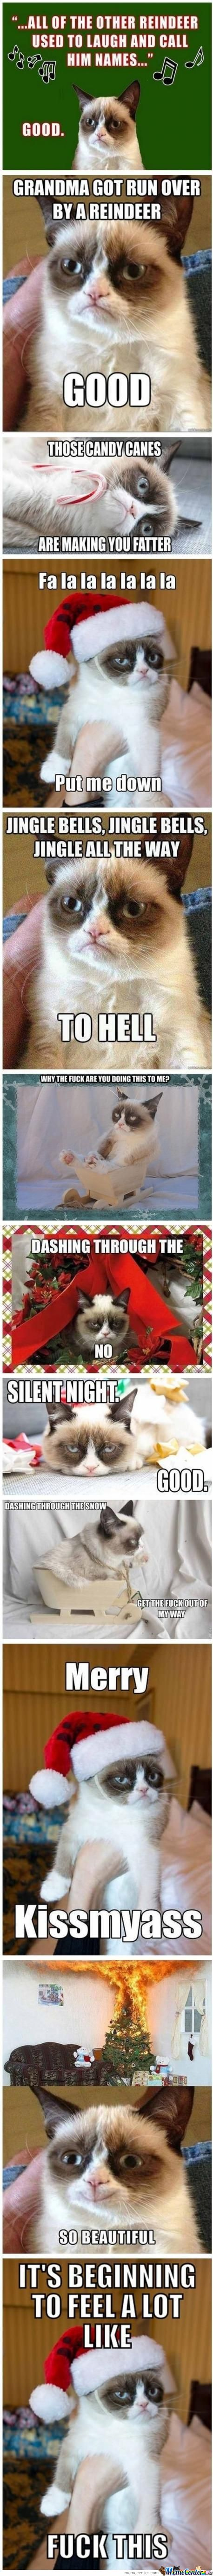 Merry Kiss My Ass Grumpy Cat Style